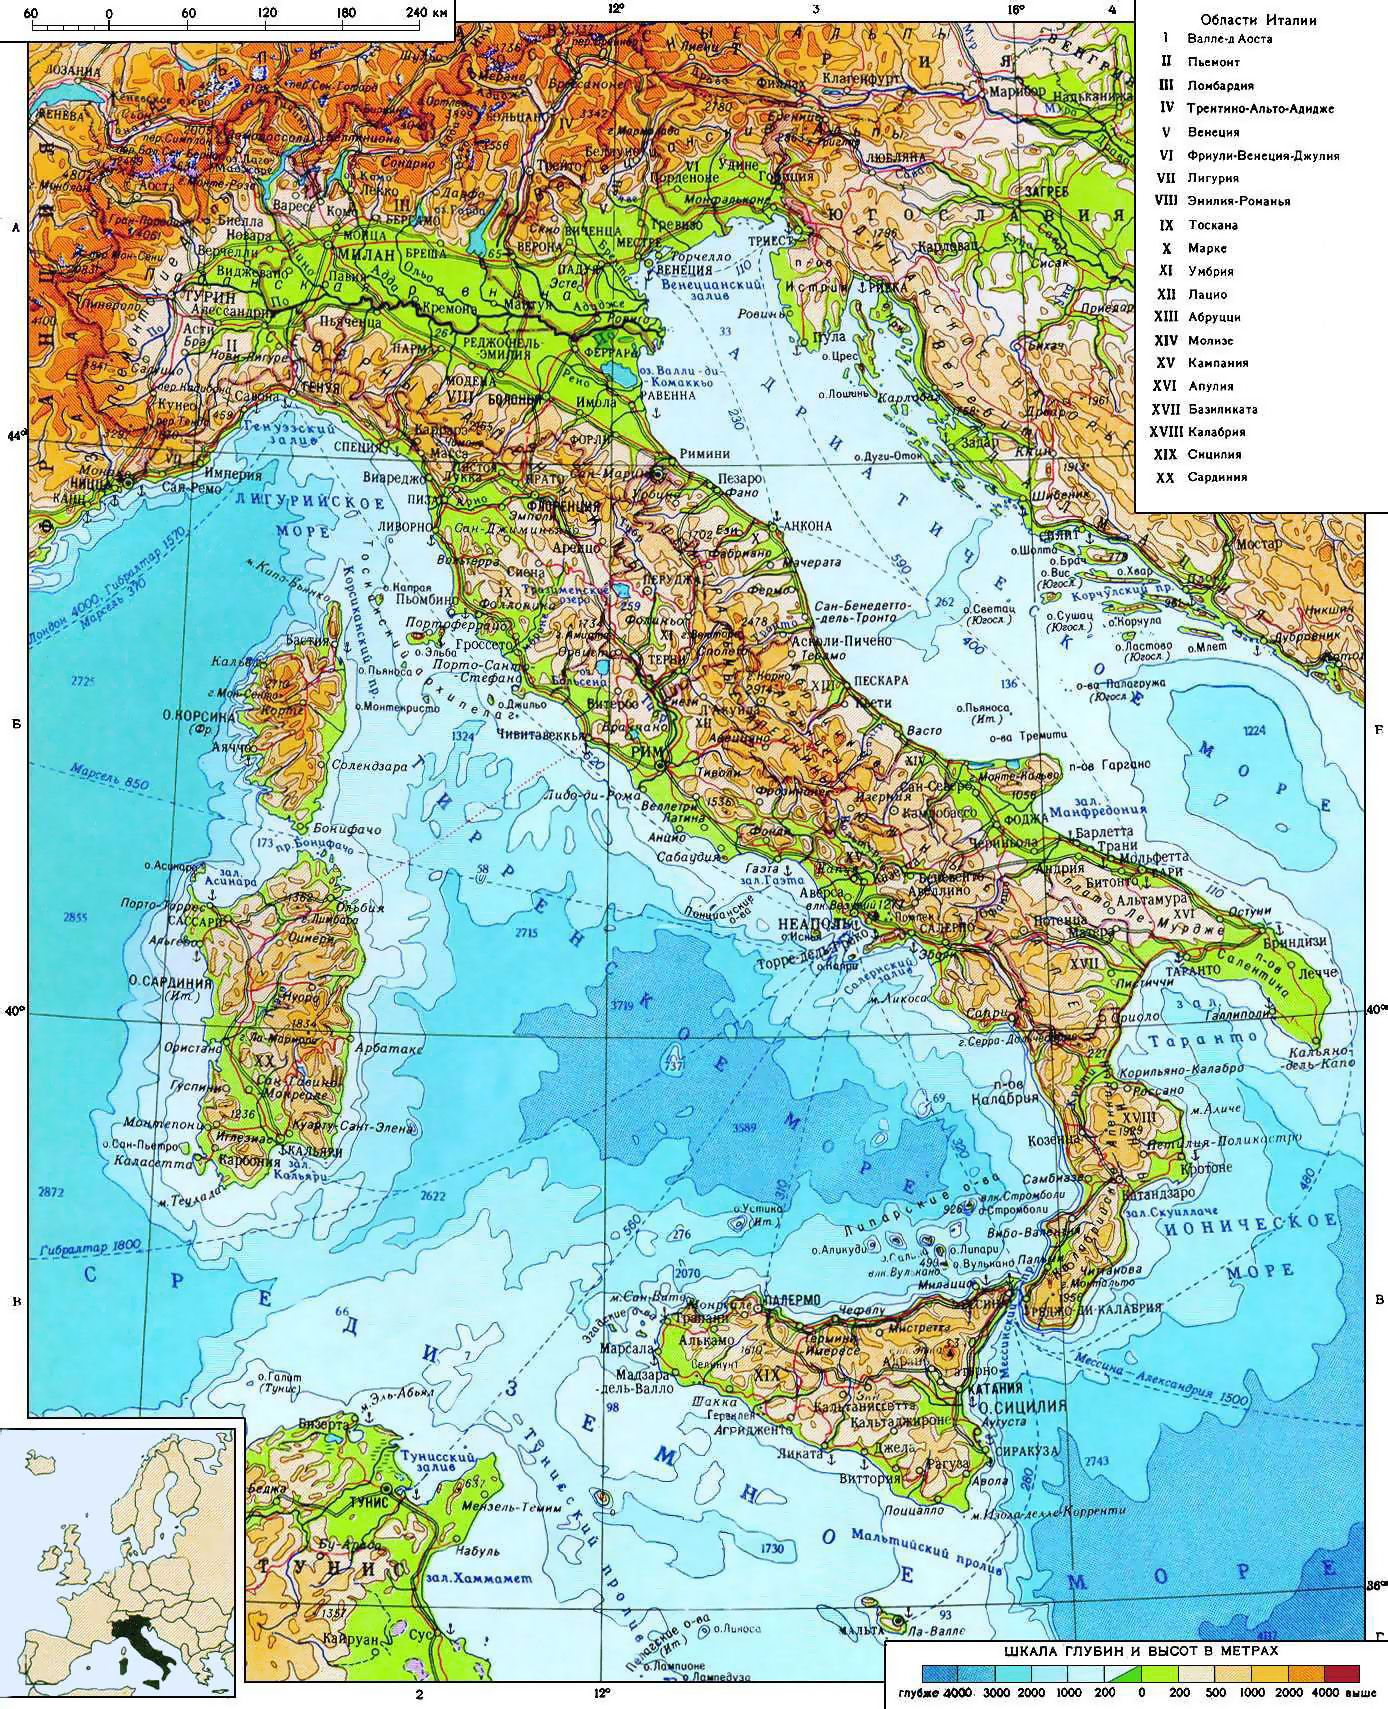 Large Map Of Italy.Large Detailed Physical Map Of Italy In Russian Italy Europe